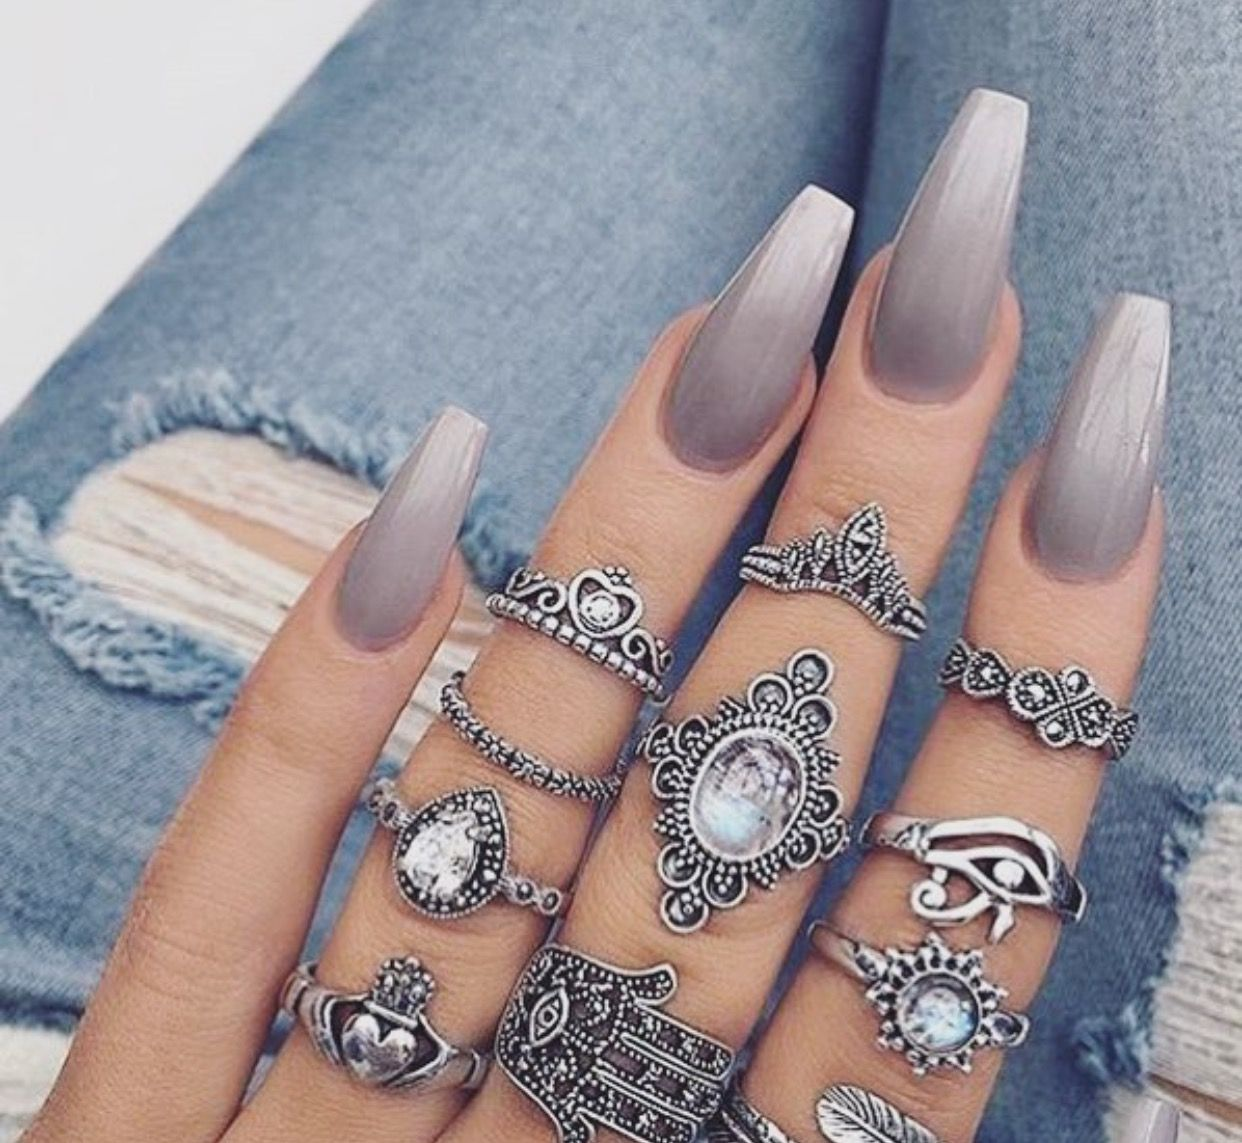 Follow me for more : @ GirlNextdoor | Nails | Pinterest | Gray nails ...